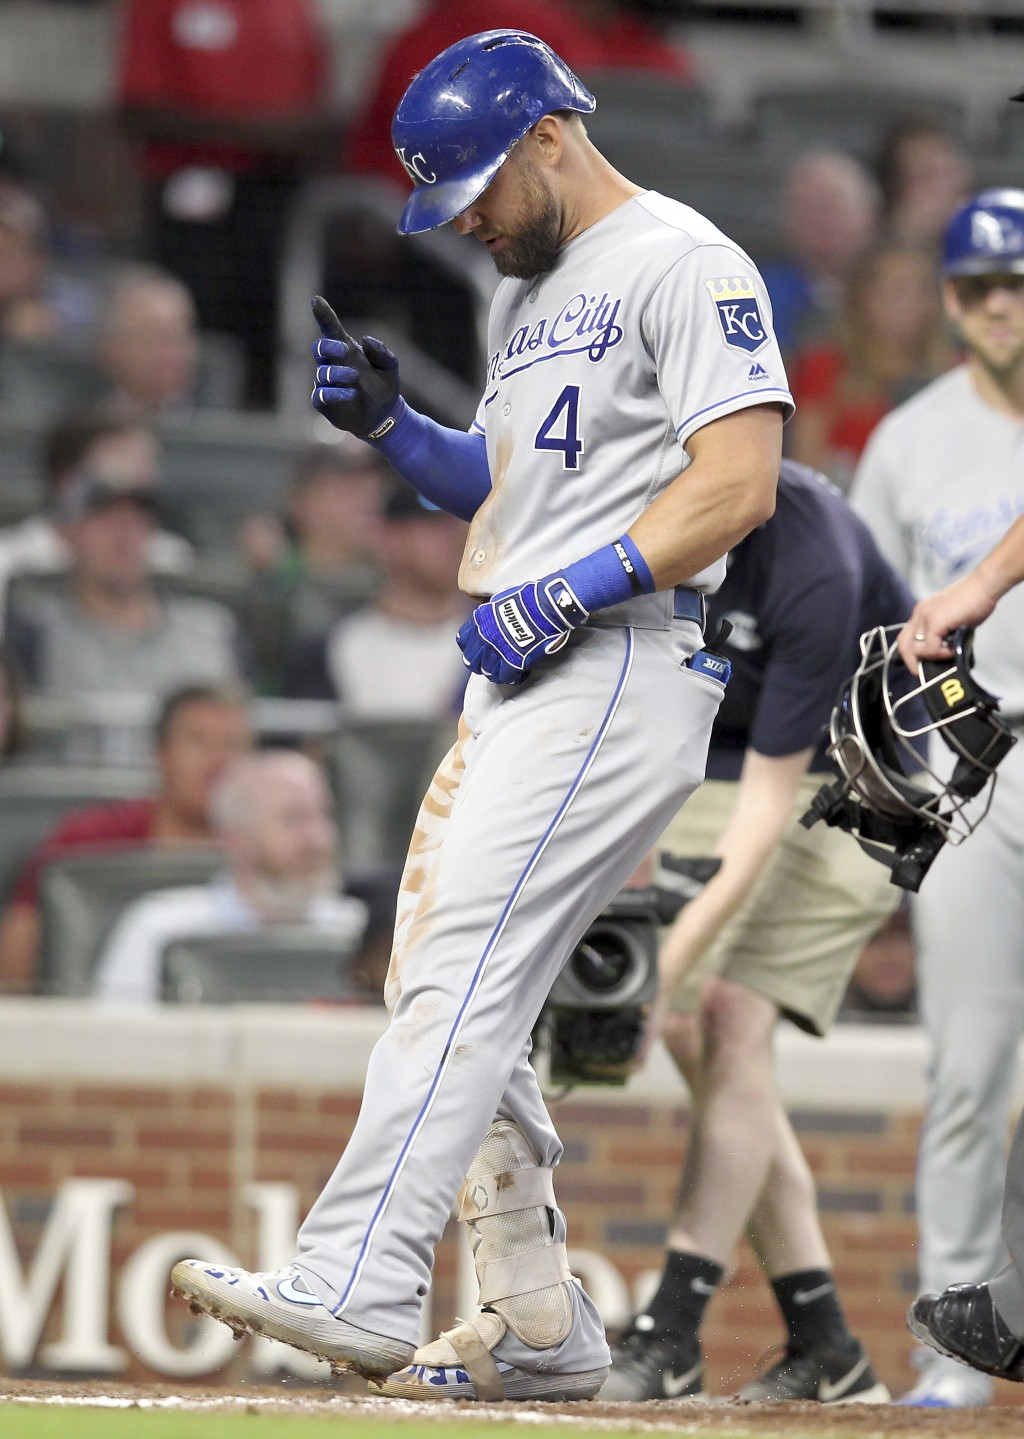 Kansas City Royals batter Alex Gordon touches home plate after a solo home run against the Atlanta Braves during the sixth inning of a baseball game T